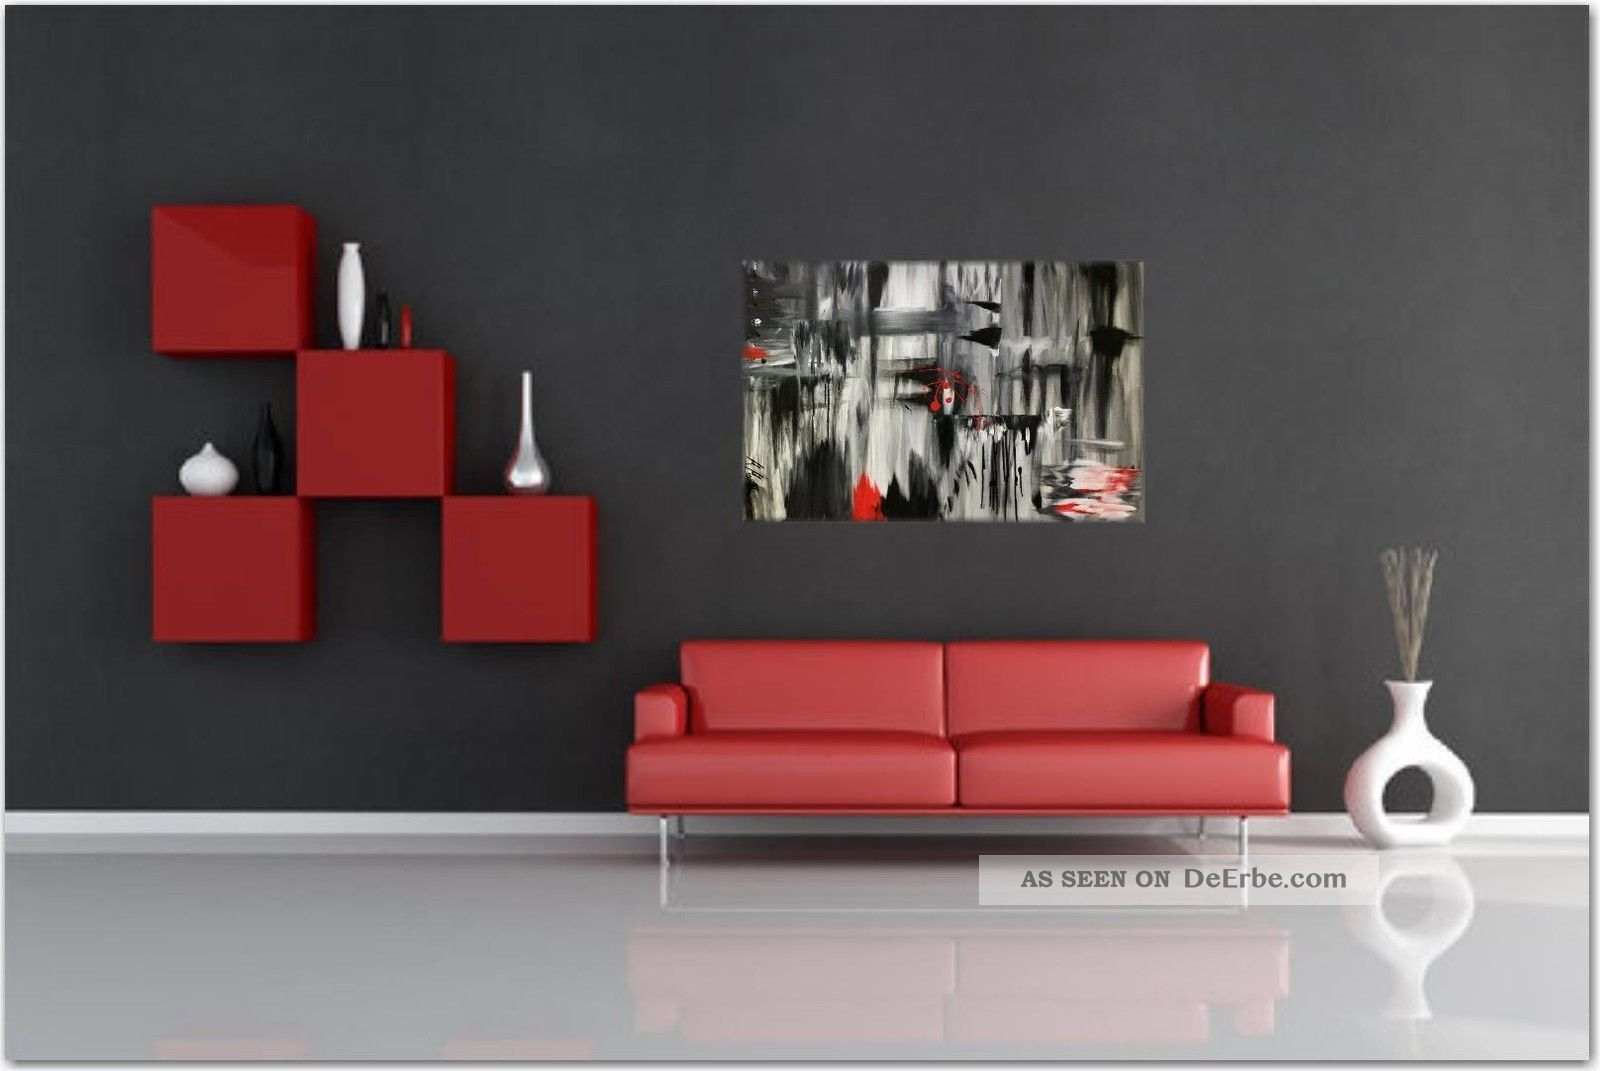 leinwand xxl rot beste bildideen zu hause design. Black Bedroom Furniture Sets. Home Design Ideas